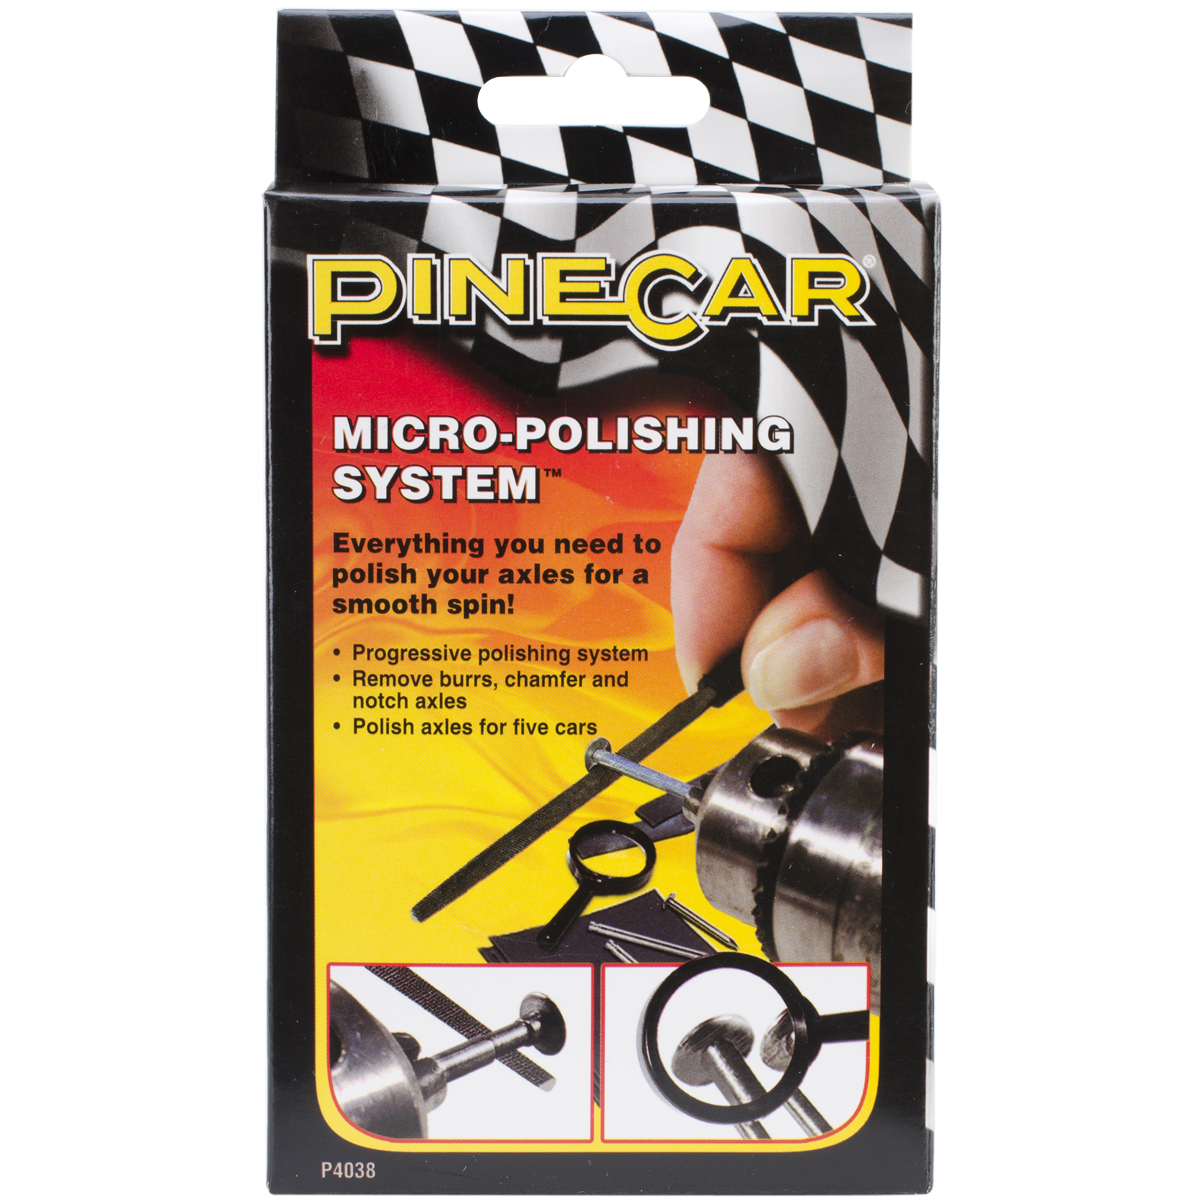 Pine Car Derby Micro-Polishing System